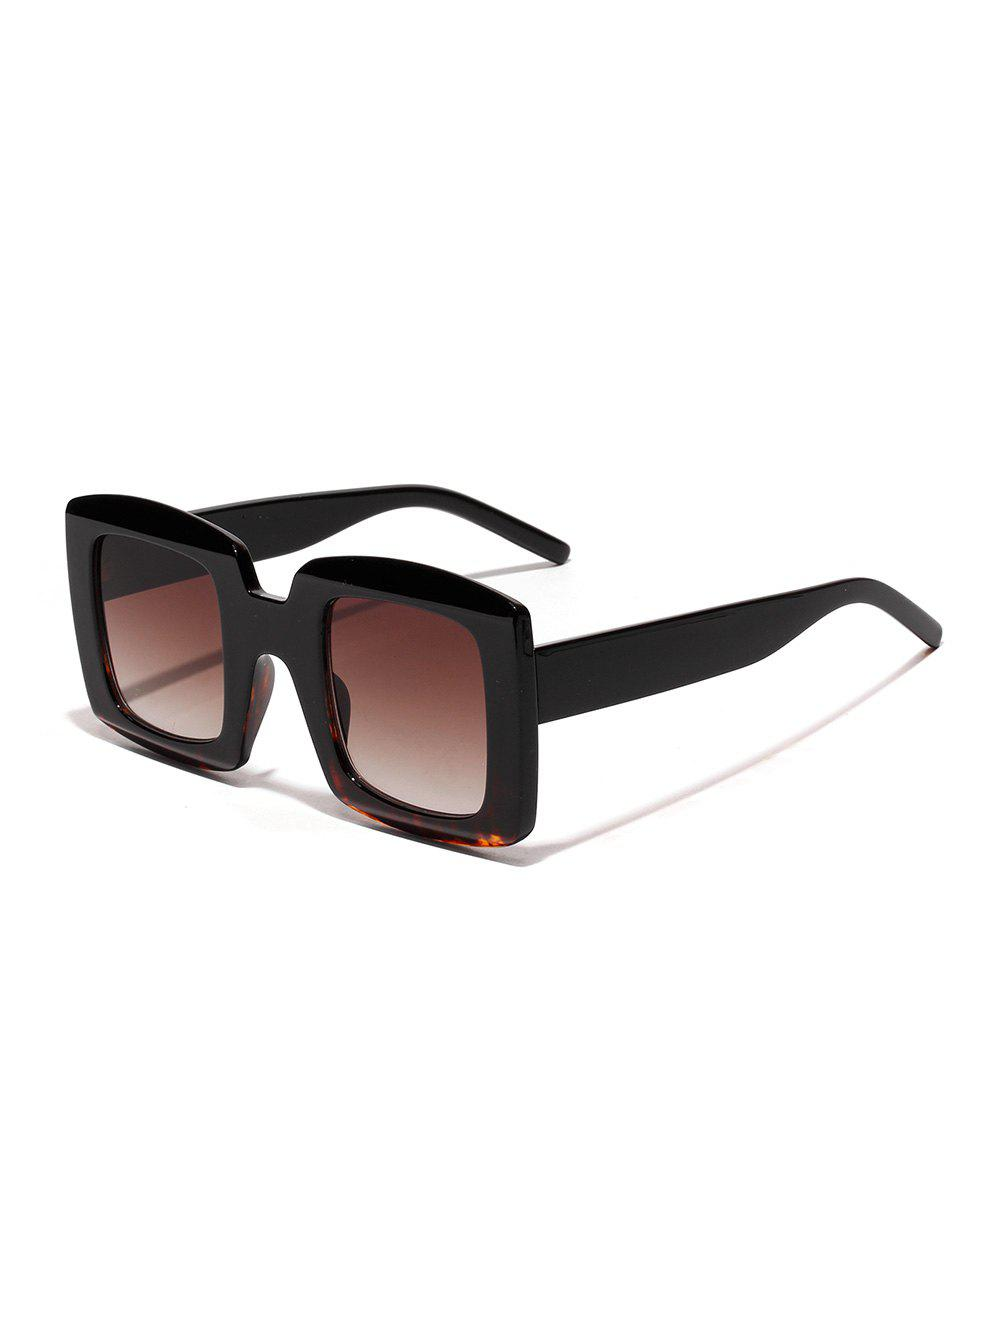 Affordable Oversized Anti UV Square Sunglasses